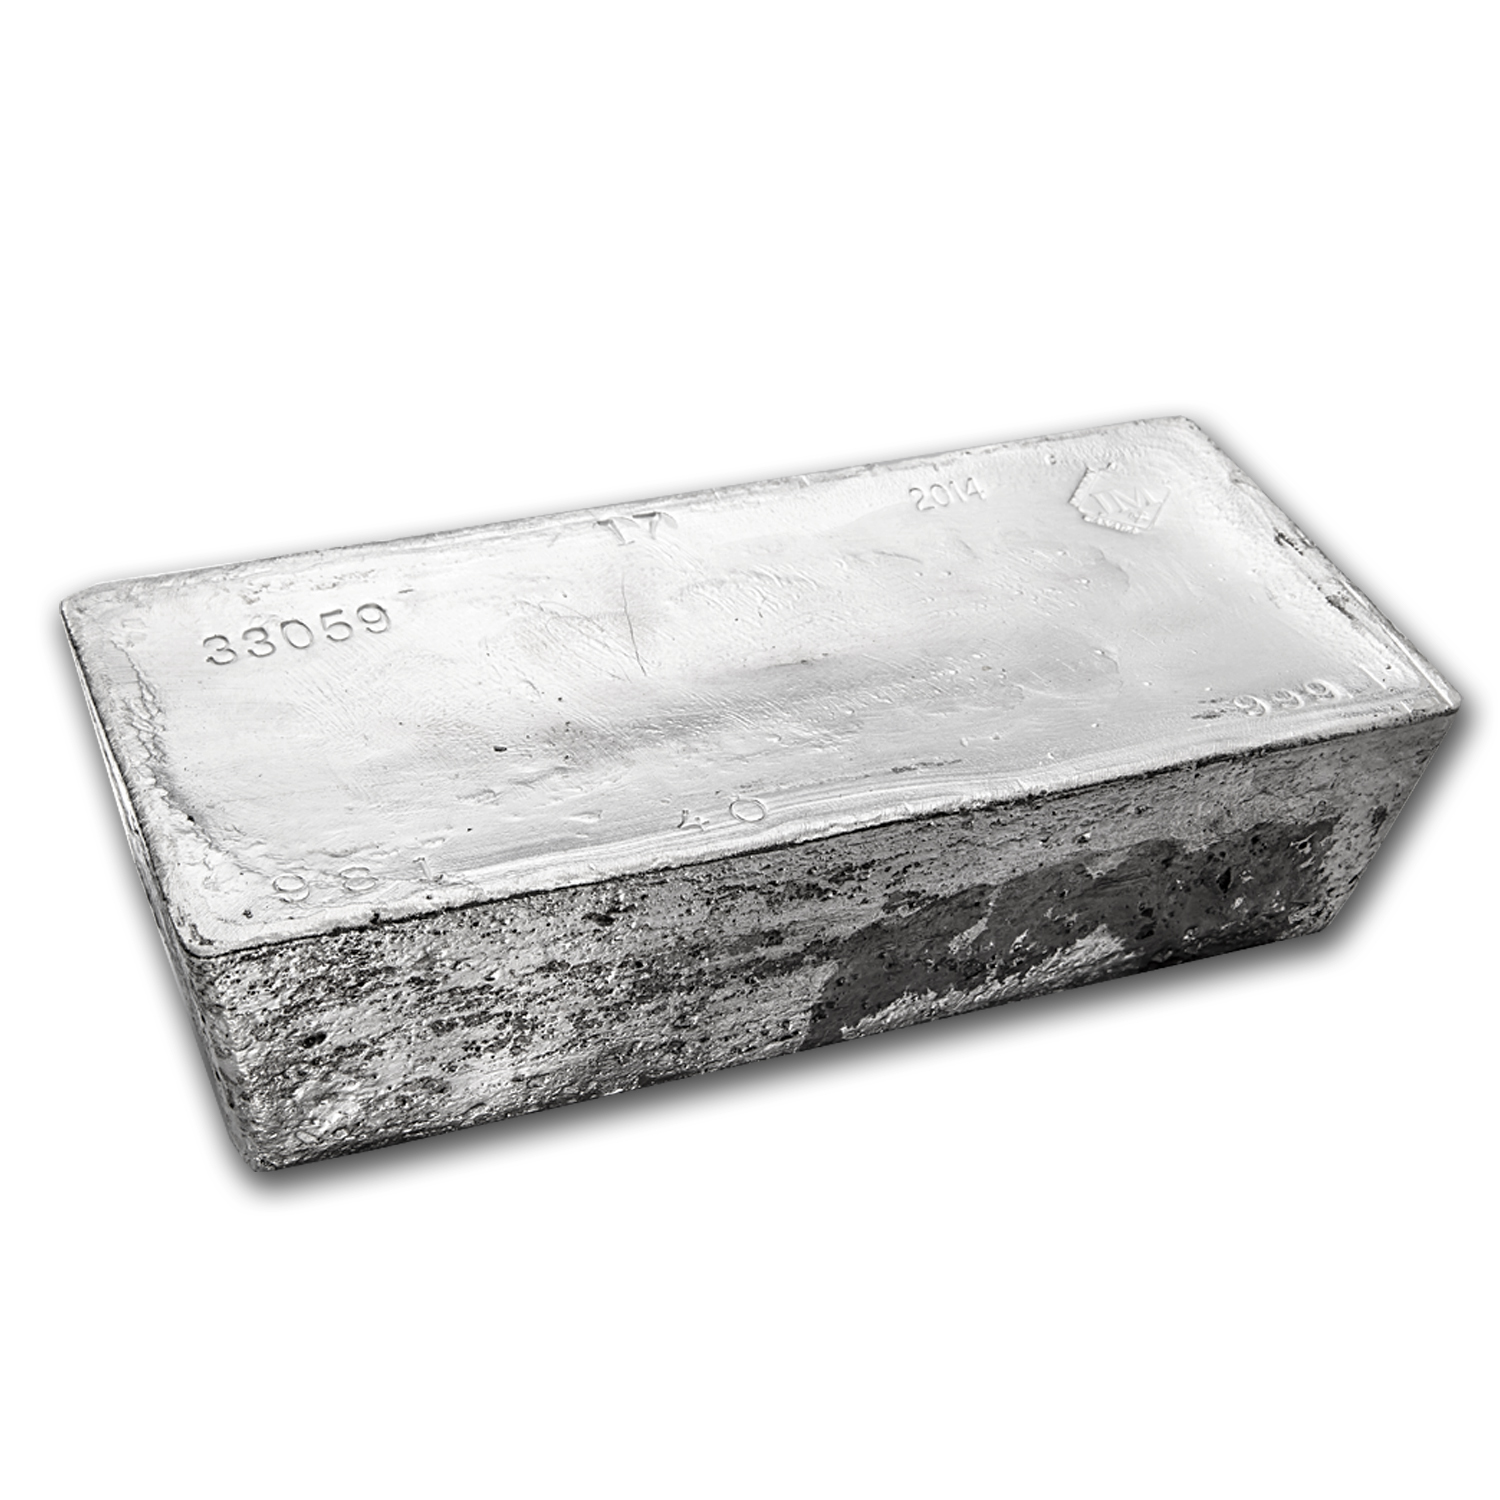 997.20 oz Silver Bar - Johnson Matthey